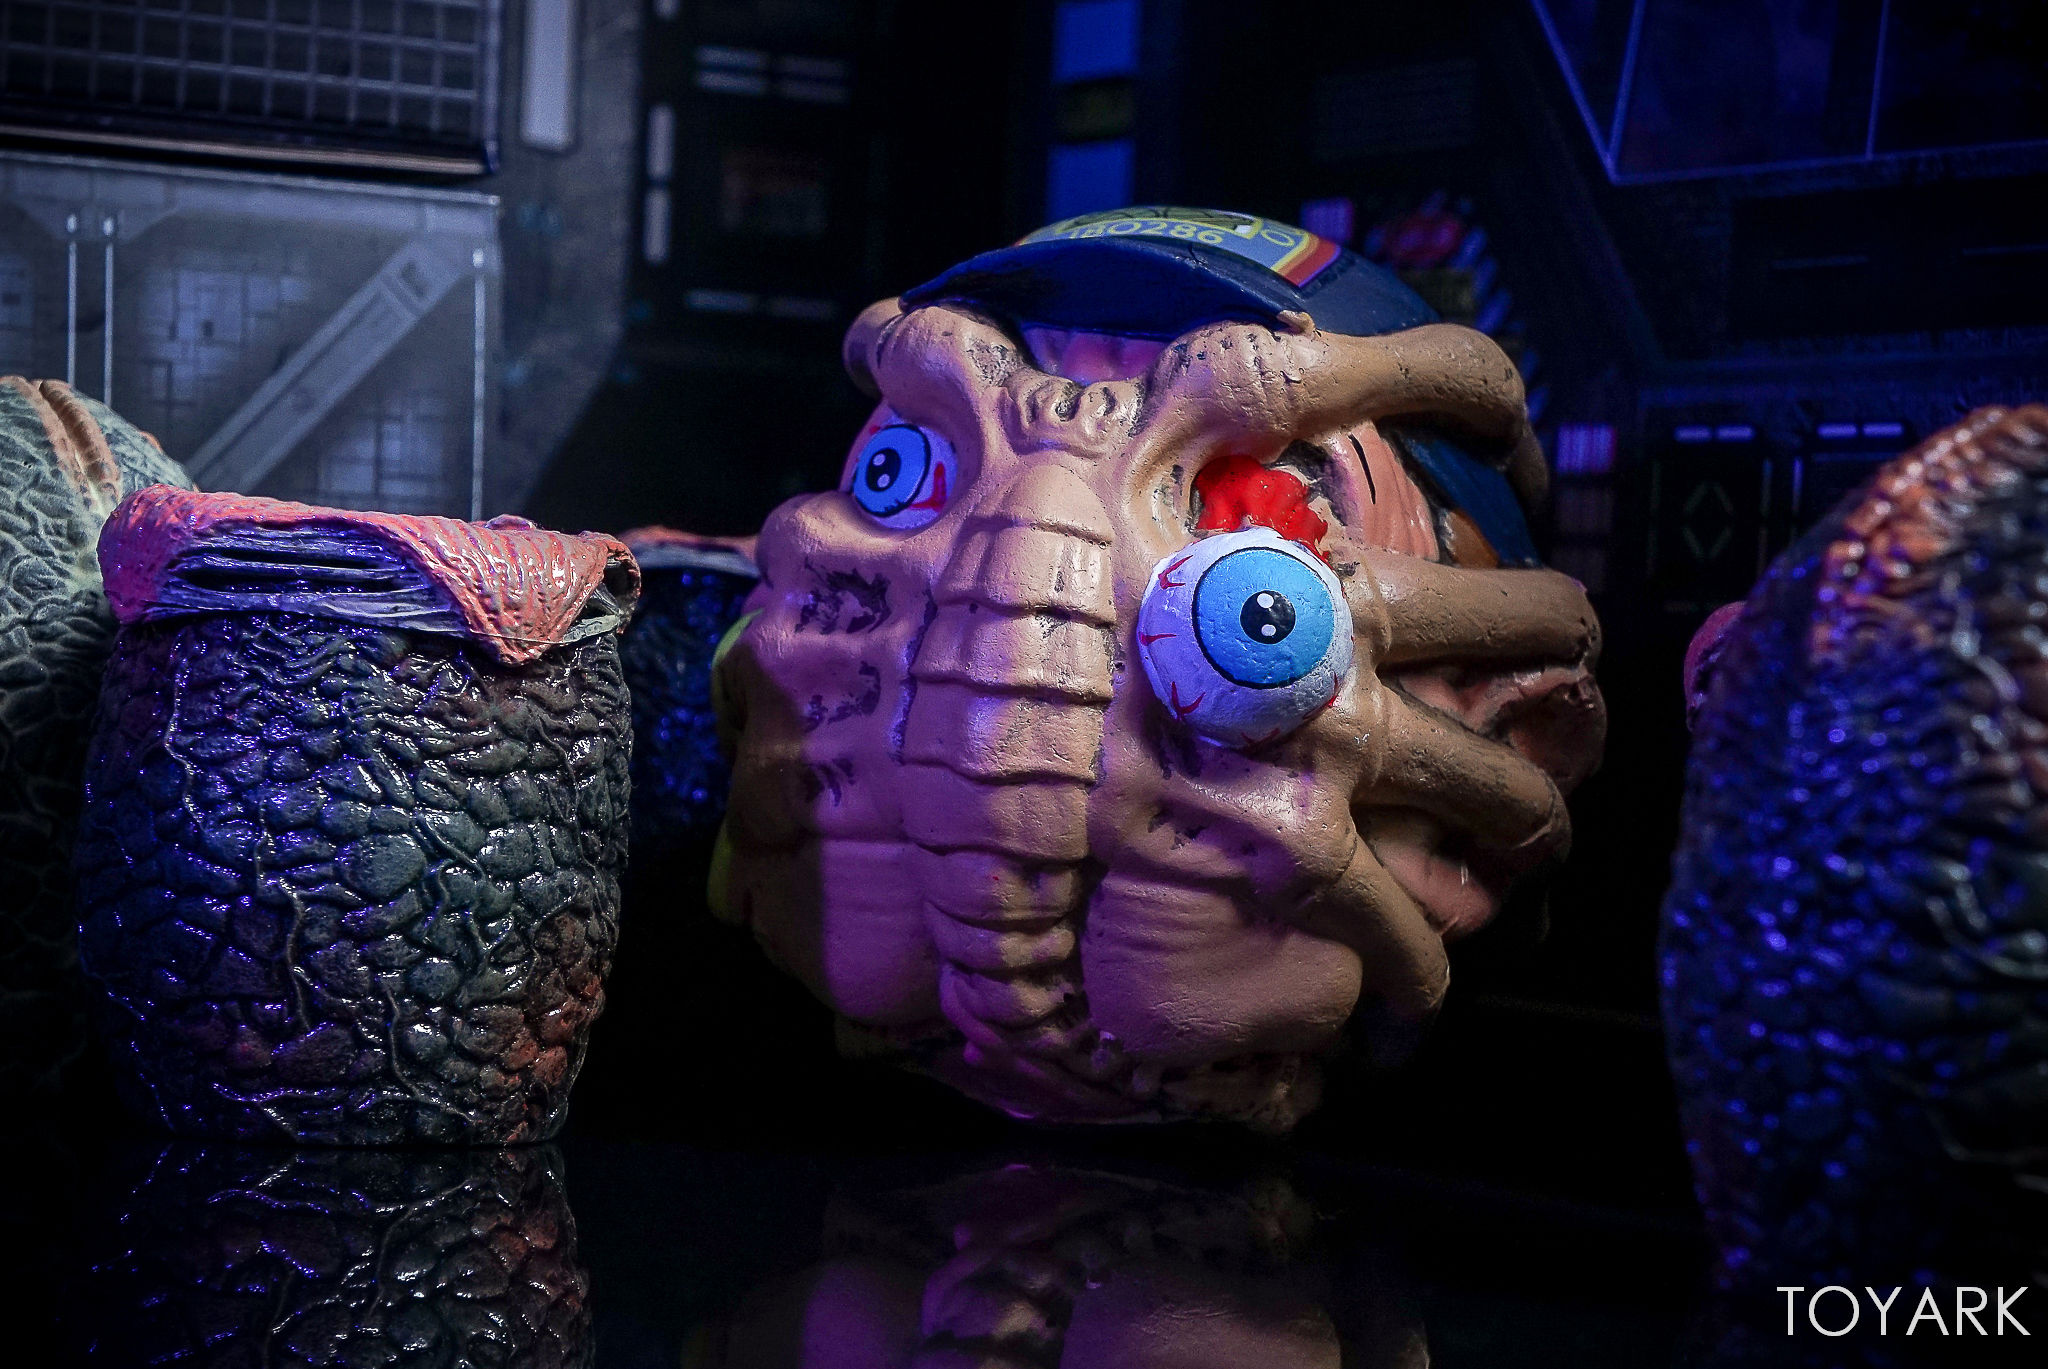 http://news.toyark.com/wp-content/uploads/sites/4/2017/09/Kidrobot-Horror-and-Sci-Fi-Madballs-038.jpg